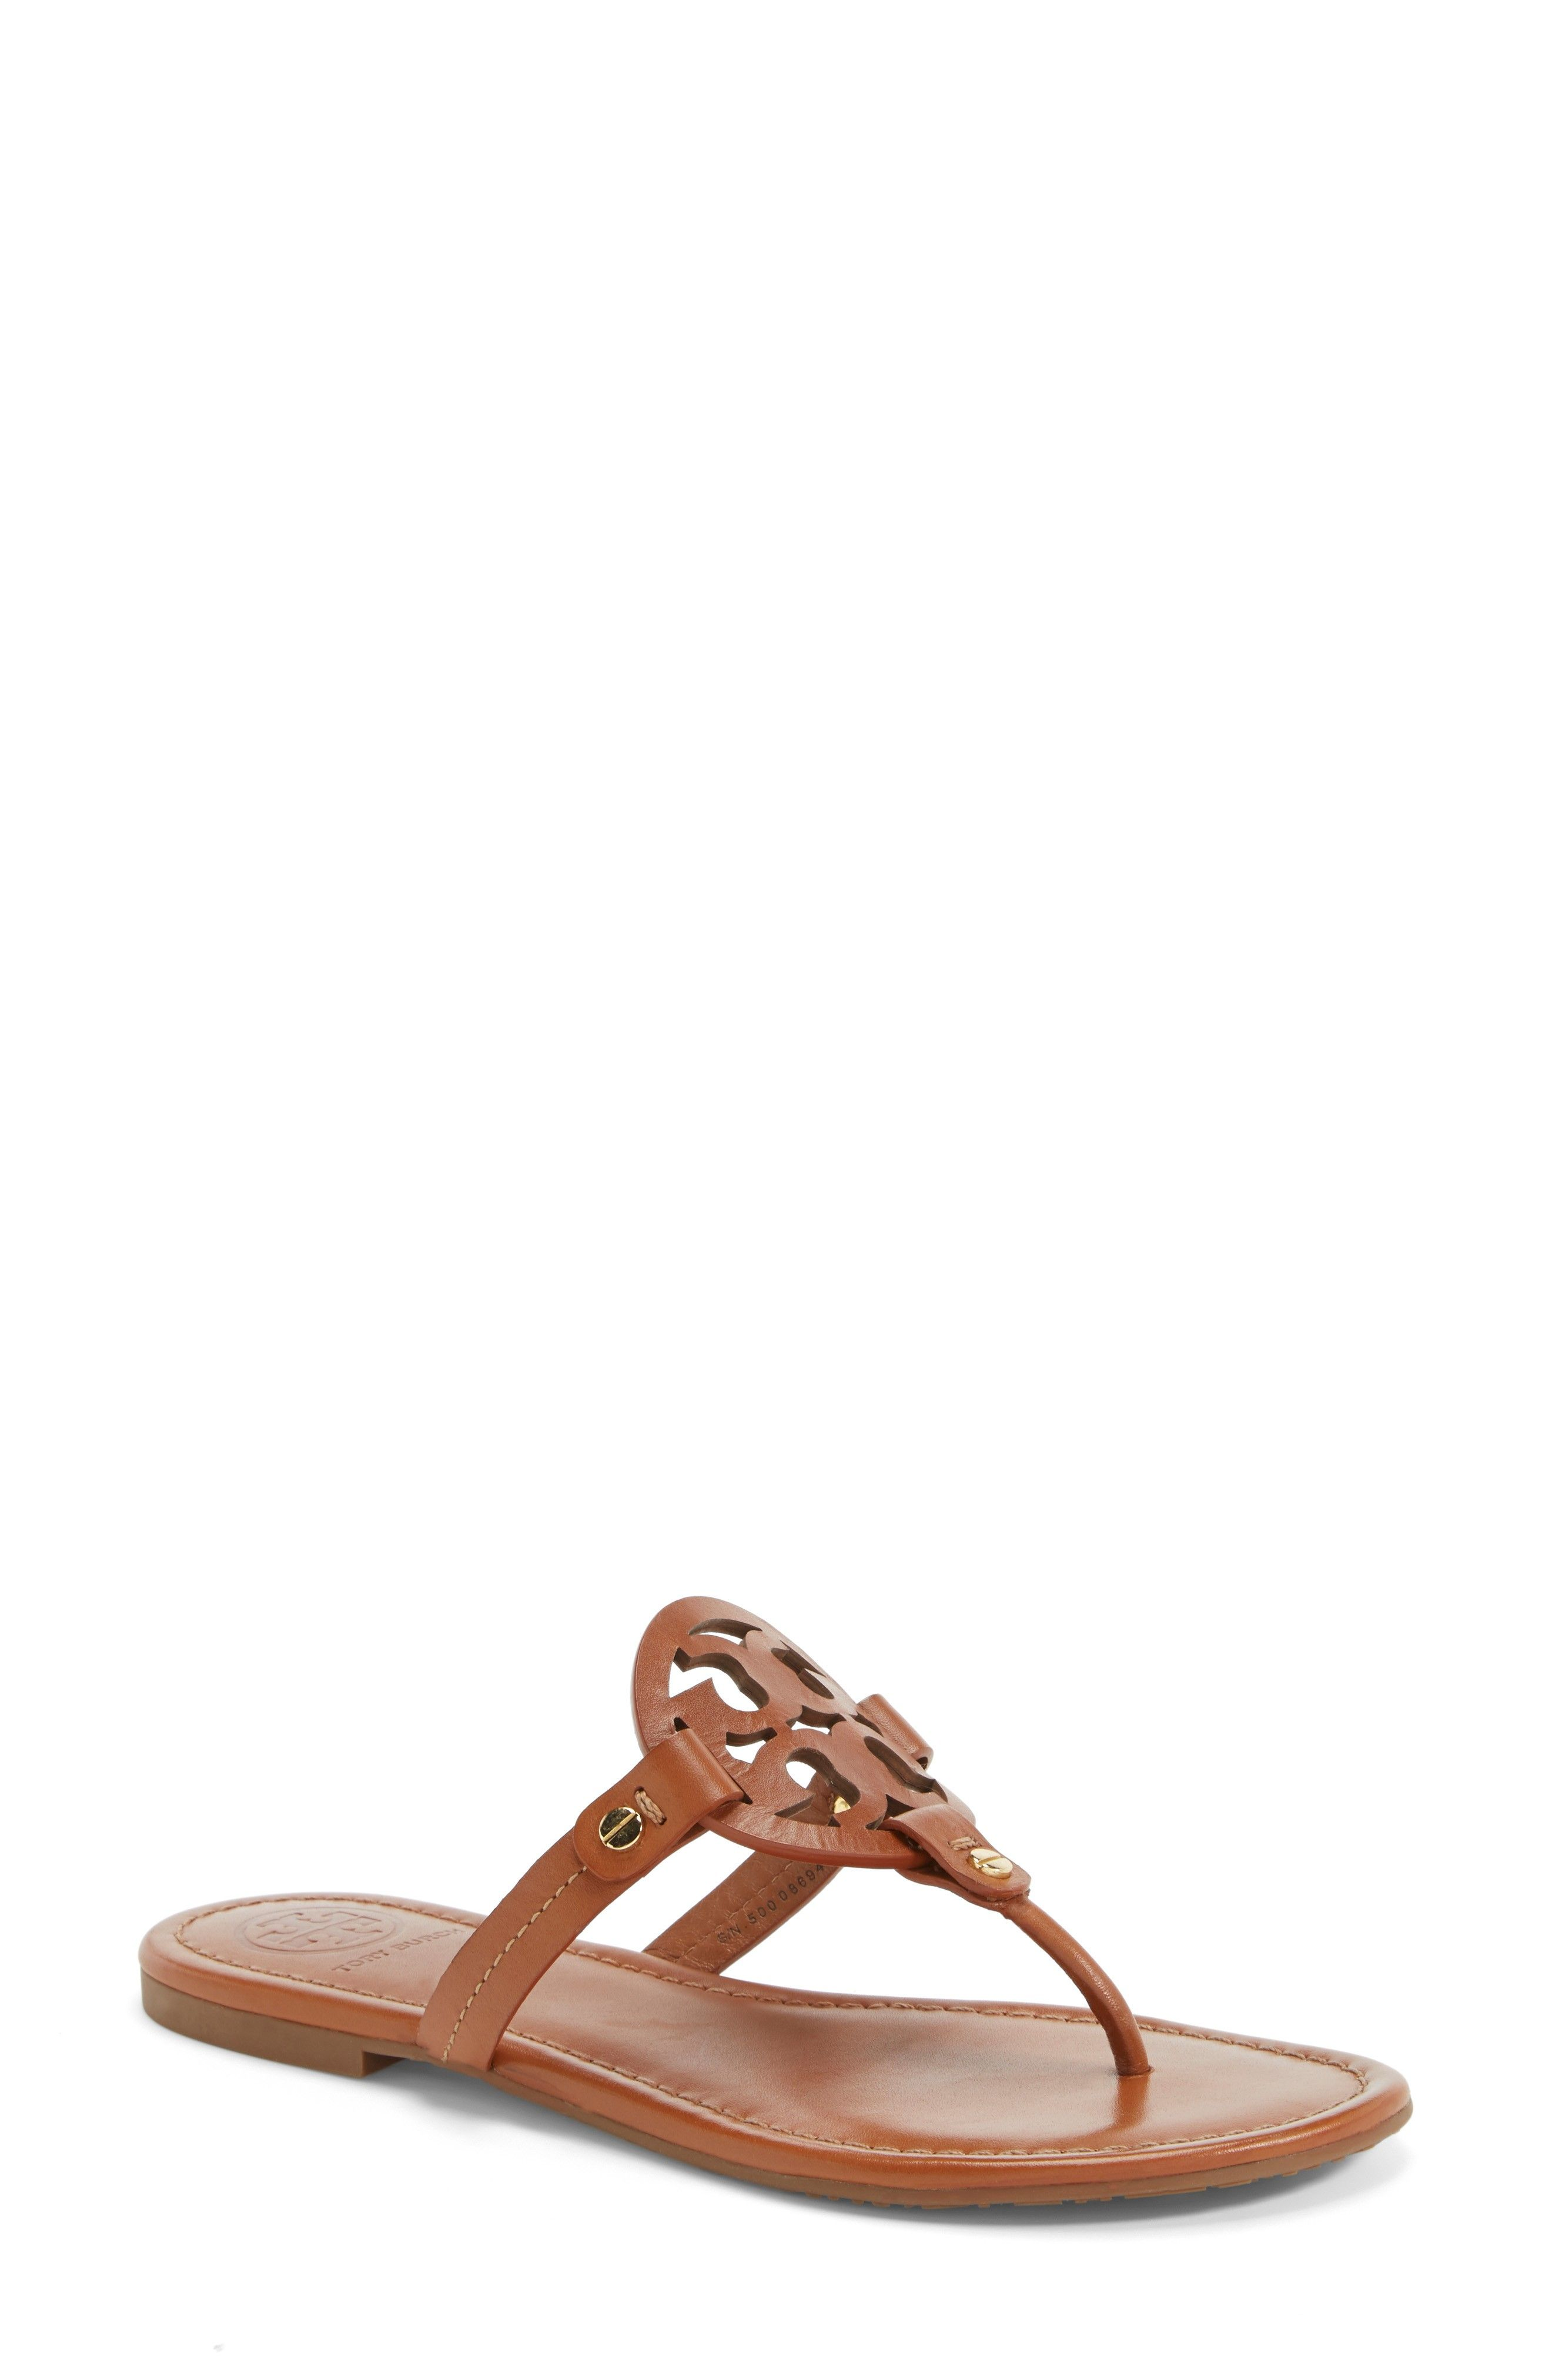 TORY BURCH | 'Miller' Flip Flop #Shoes #Sandals #Slides #TORY